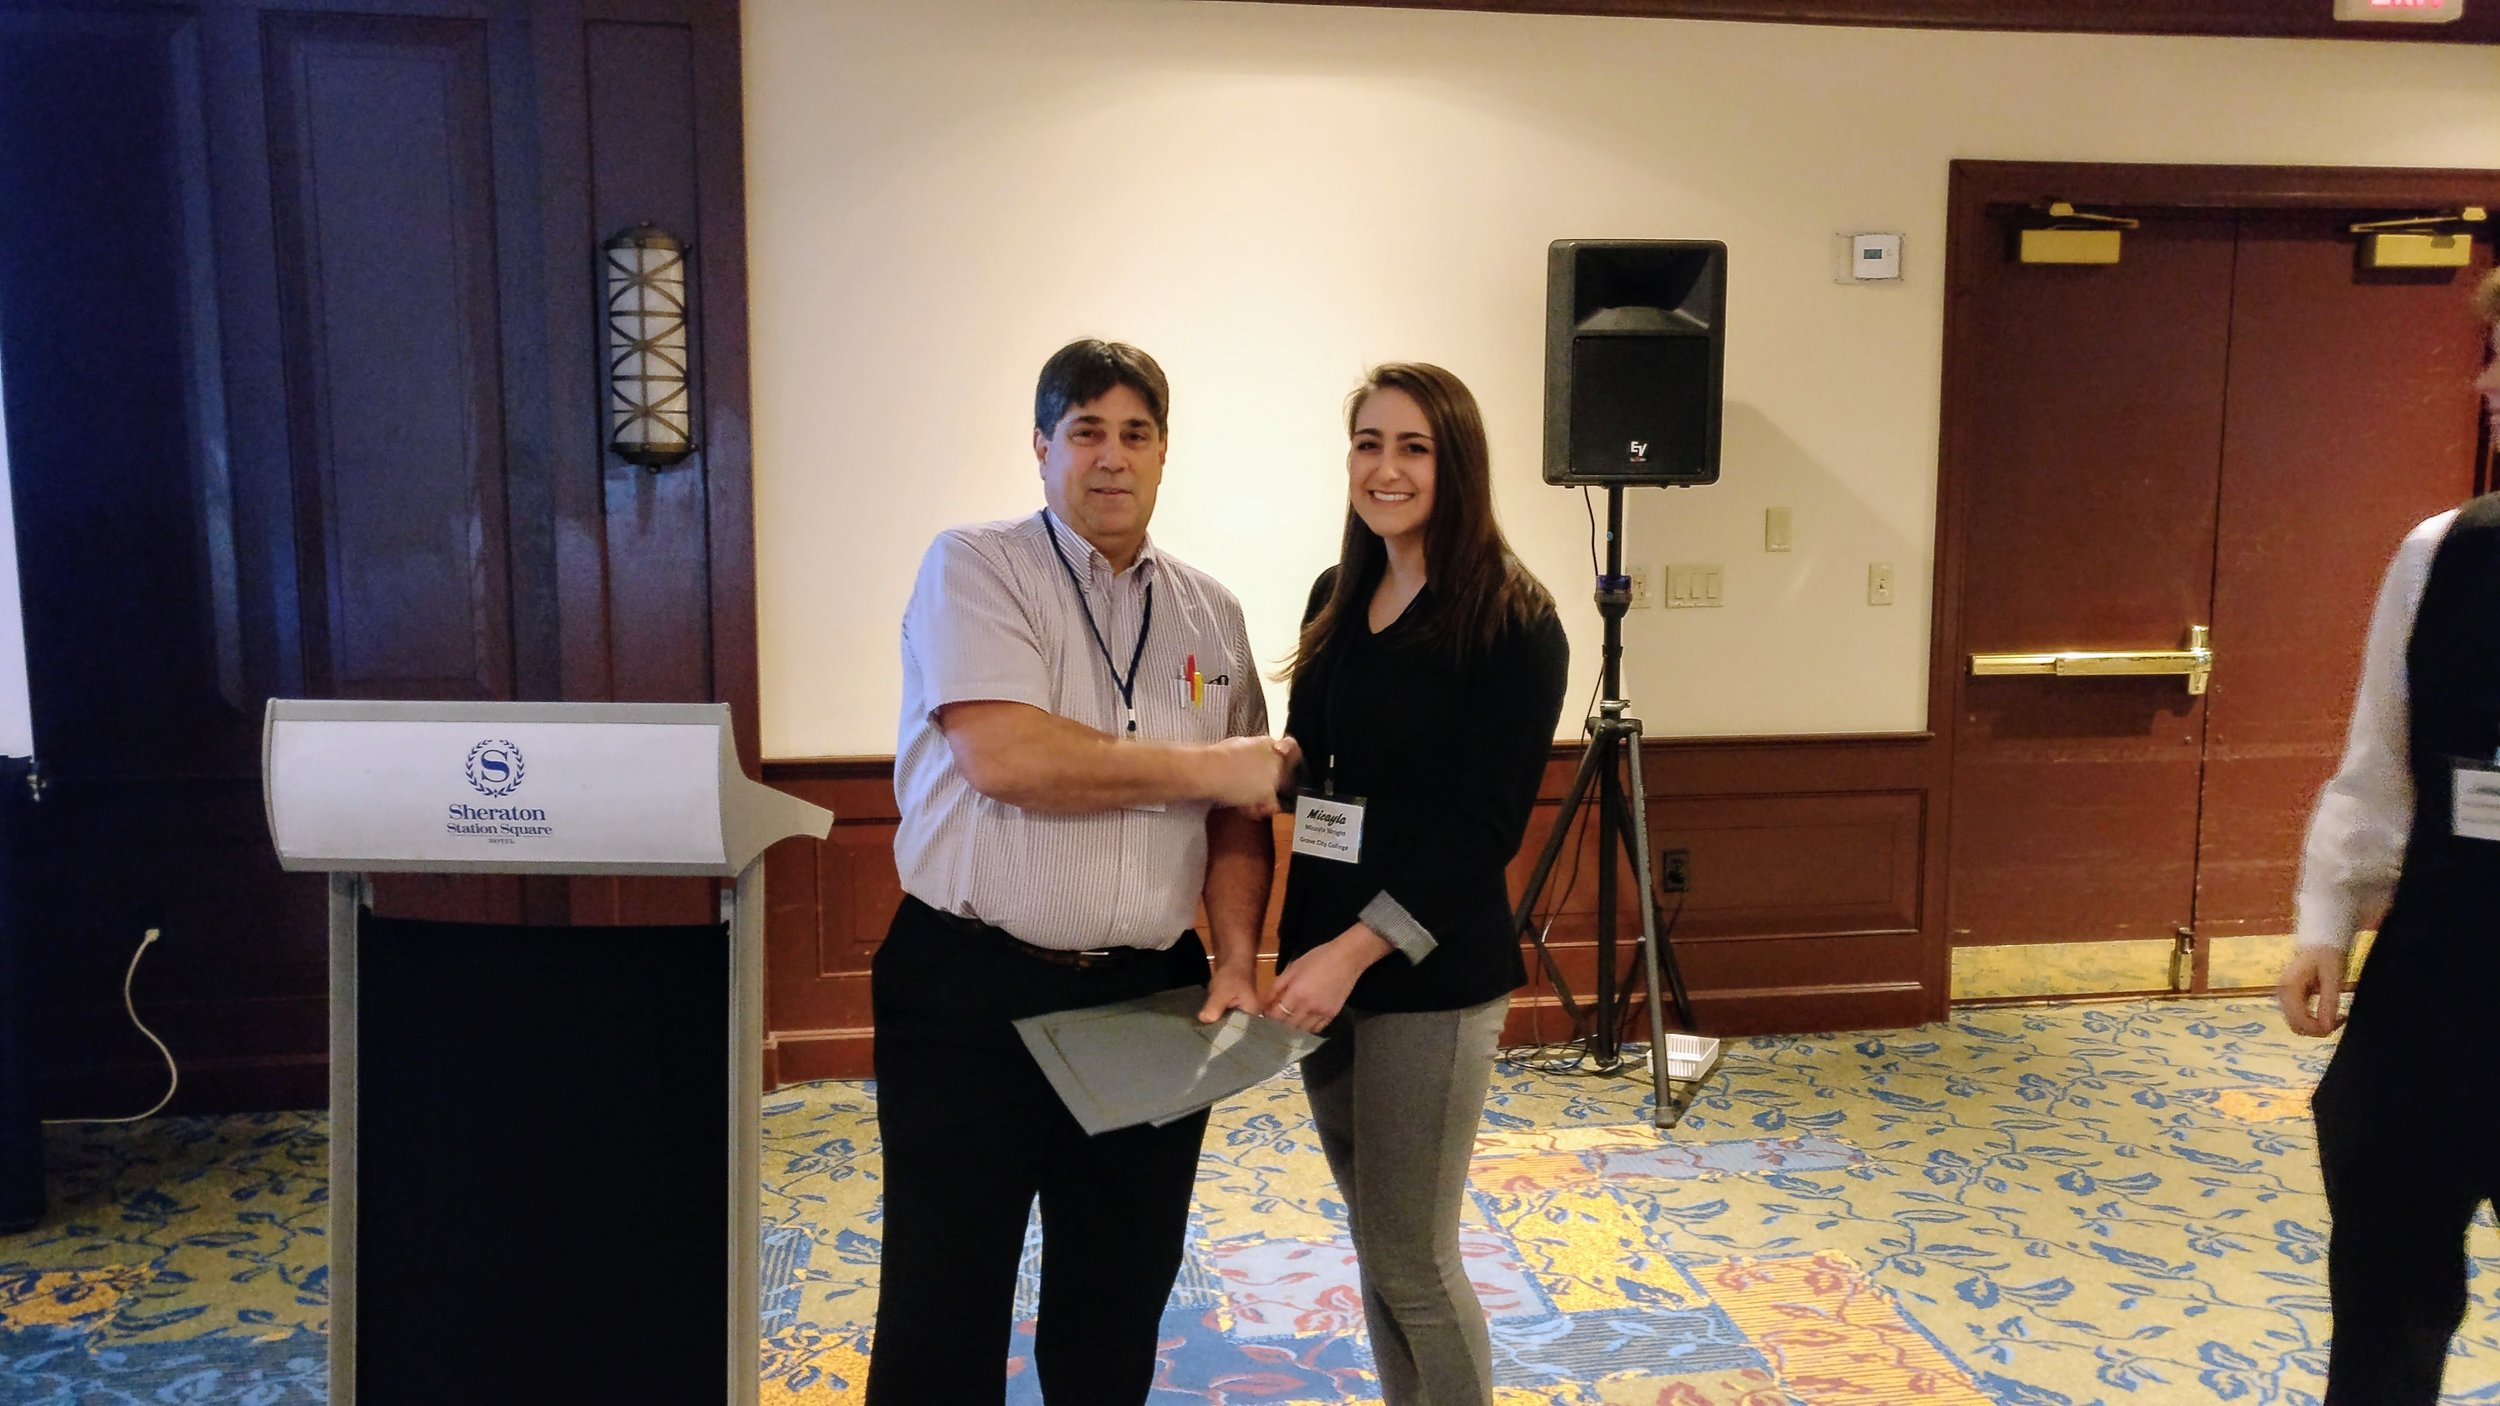 Congratulations to Micayla Wright for receiving a Student Activities Member scholarship this year.